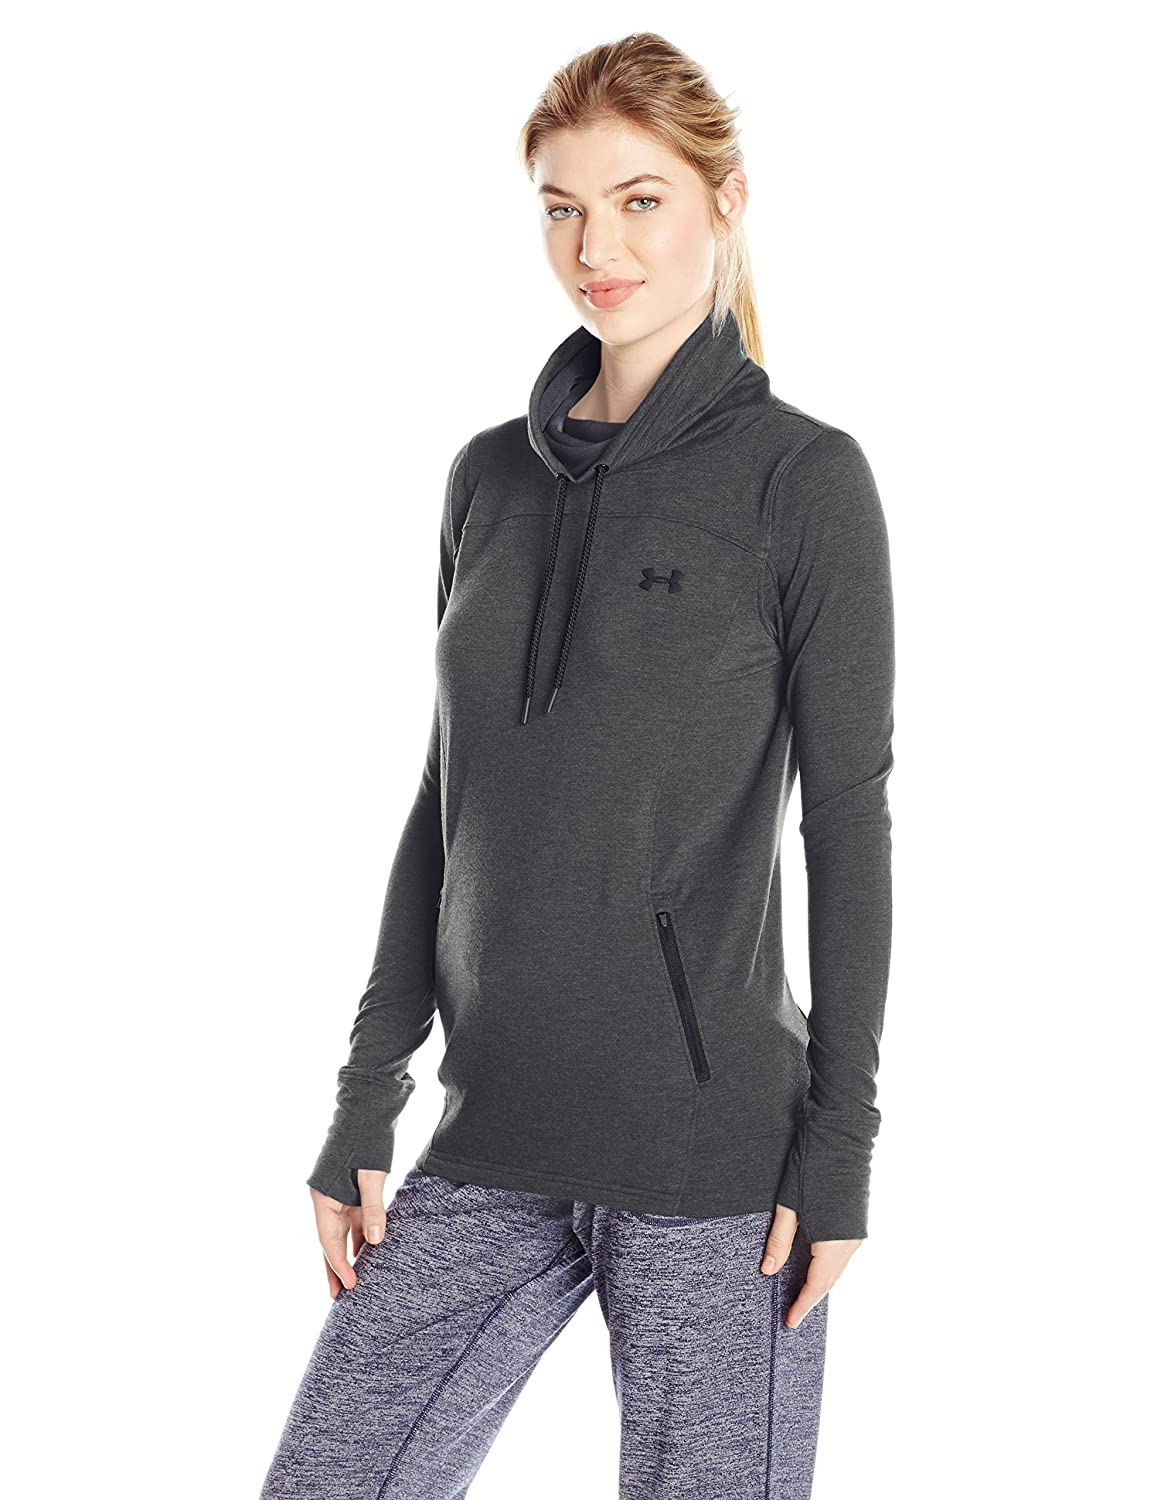 Under Armour Women's Featherweight Fleece Slouchy Popover Under Armour Apparel 1293020